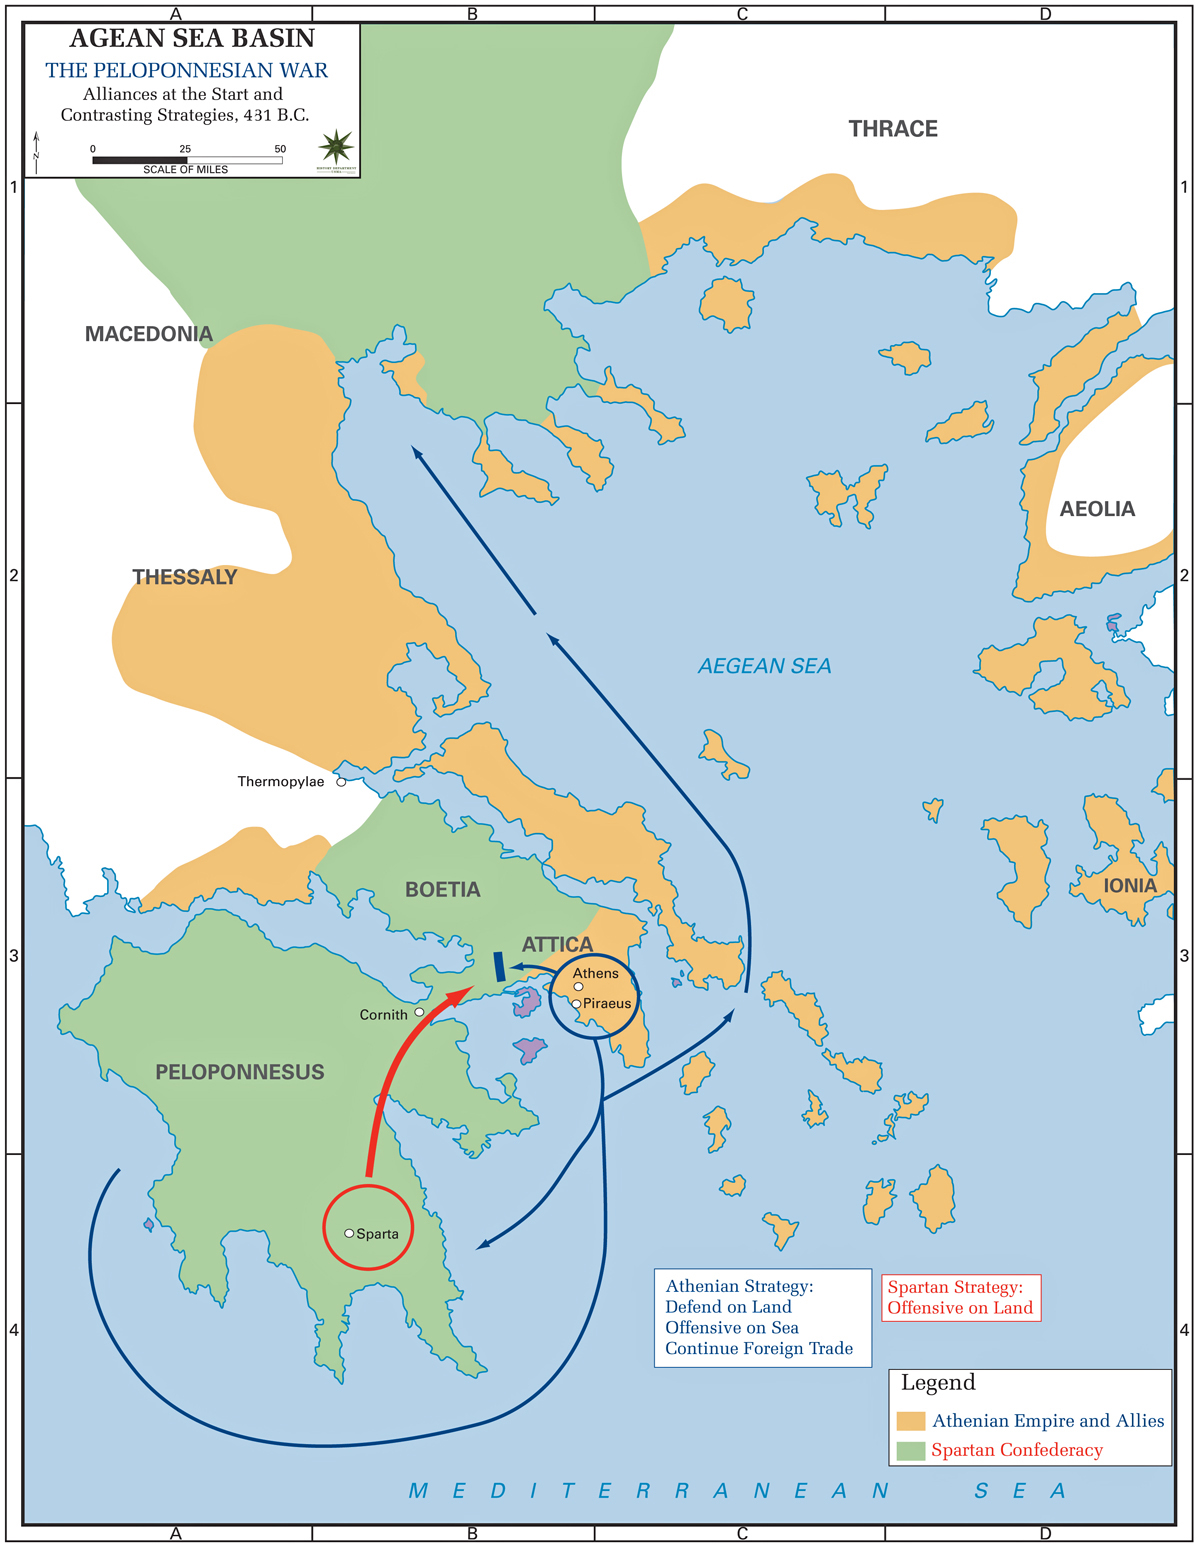 essay on thucydides peloponnesian war The history of the peloponnesian war, also known as histories, recounts the war between the athenian alliance (called the delian league by modern historians) and sparta and its allies (called the peloponnesian league by modern historians), which took place from 431-404 bc composed in the 5th century bc by thucydides (c 460-400), it is the.